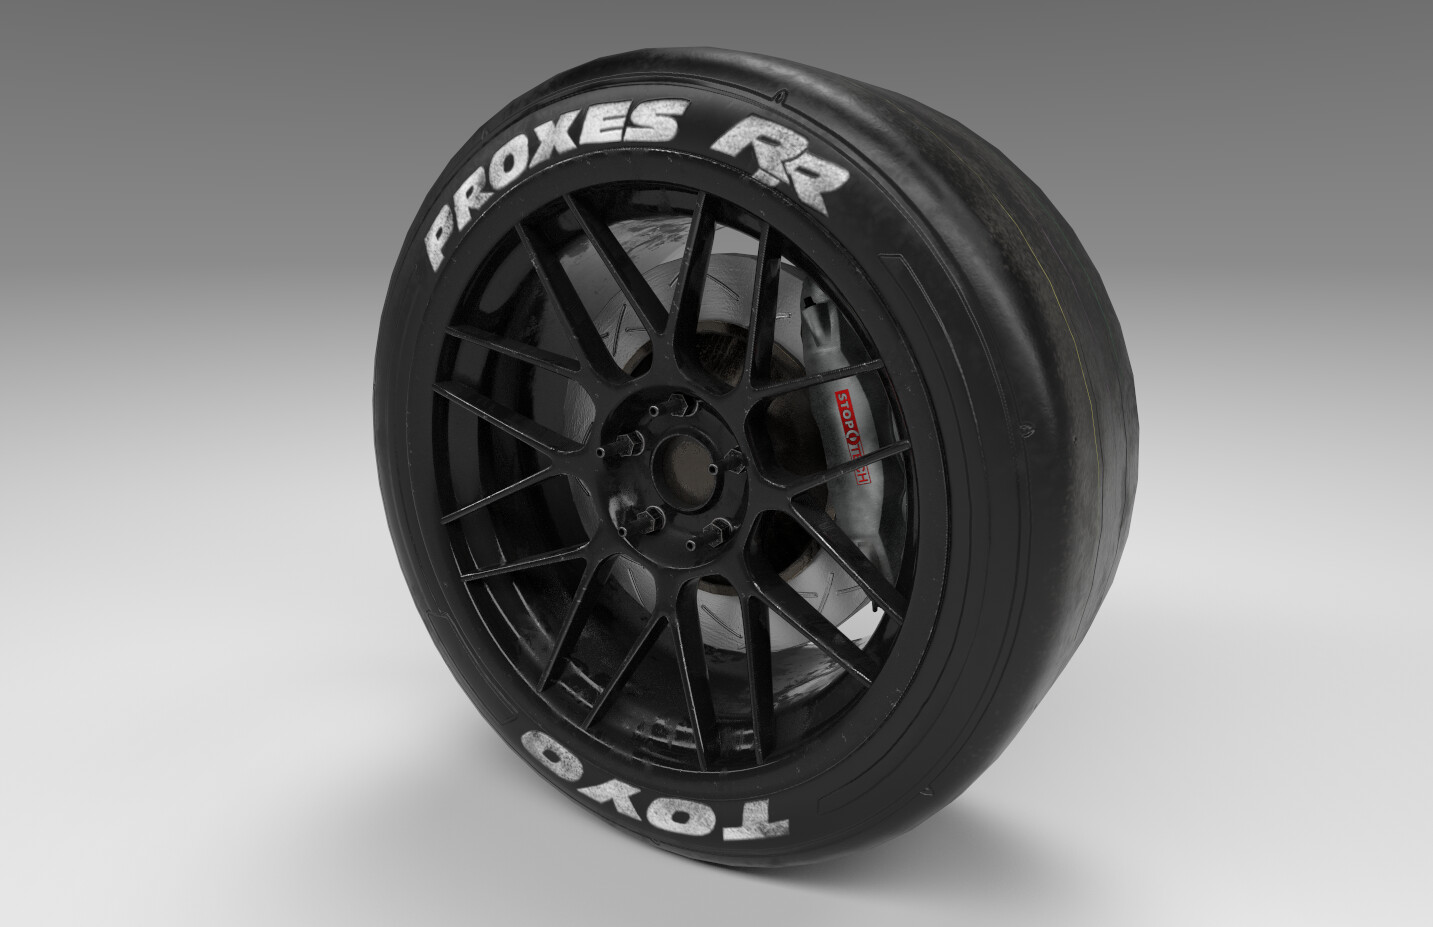 Race wheel and tire